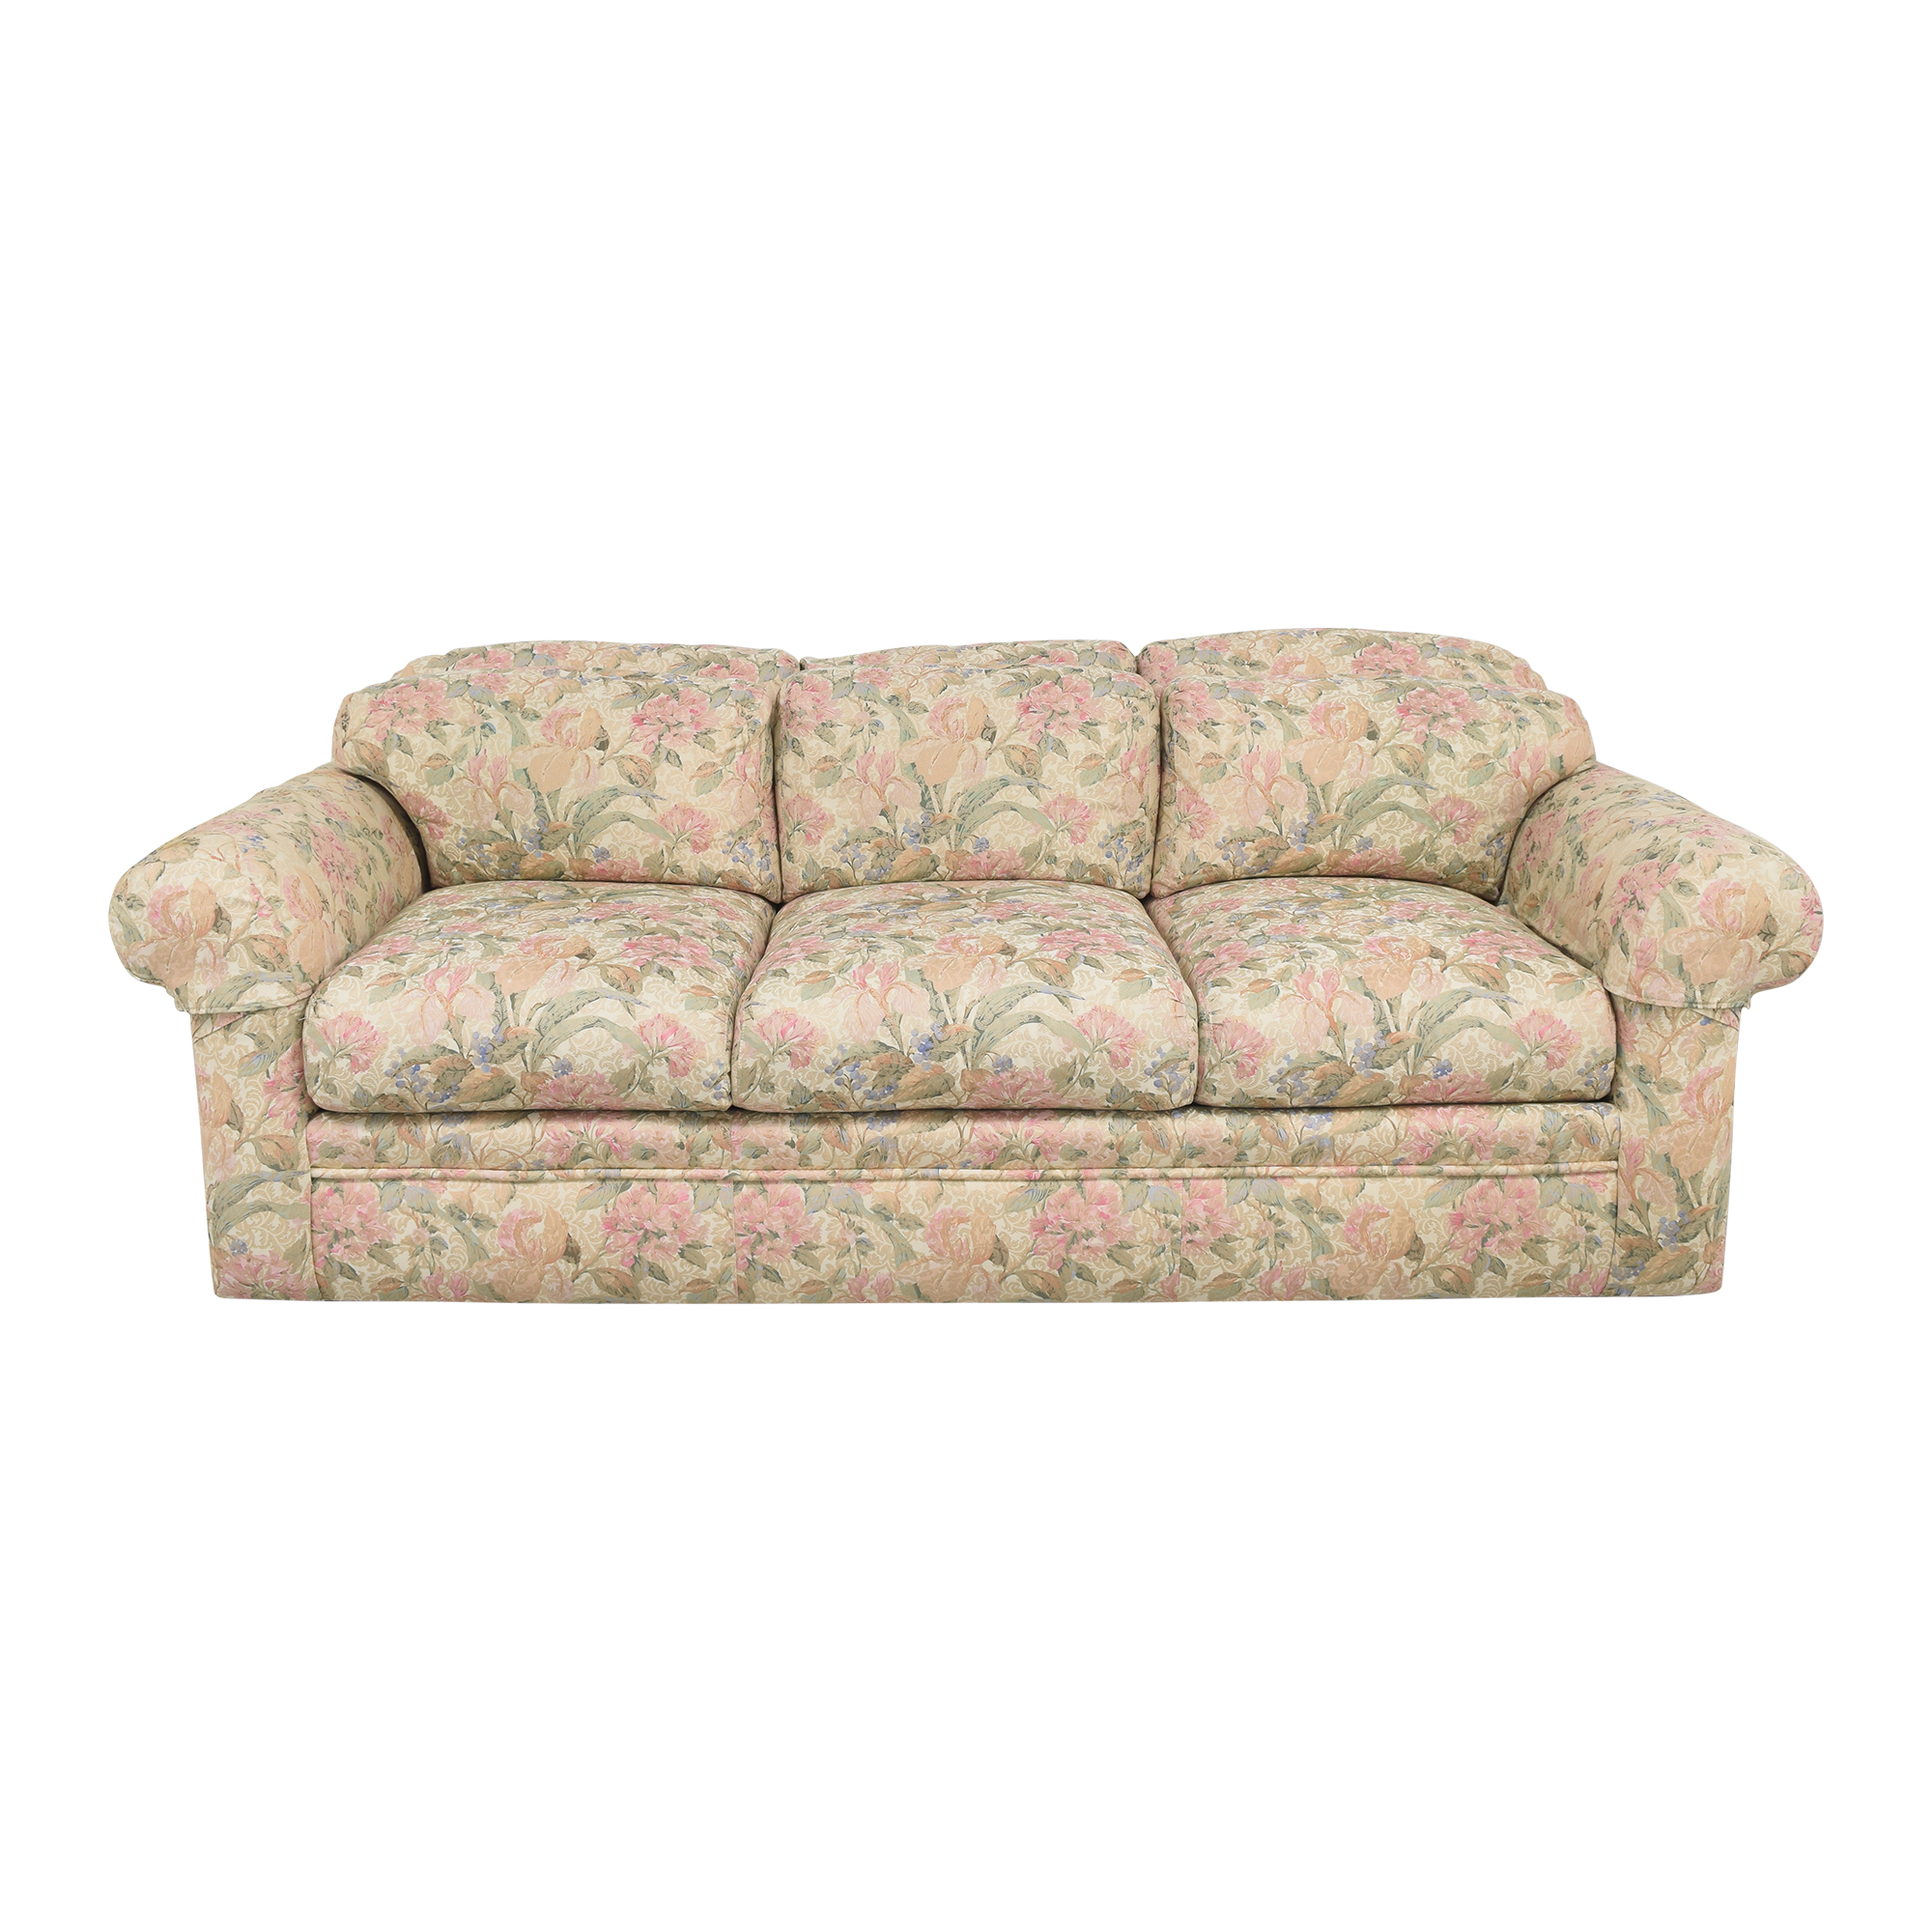 buy Heritage Heritage Floral Three Cushion Sofa online